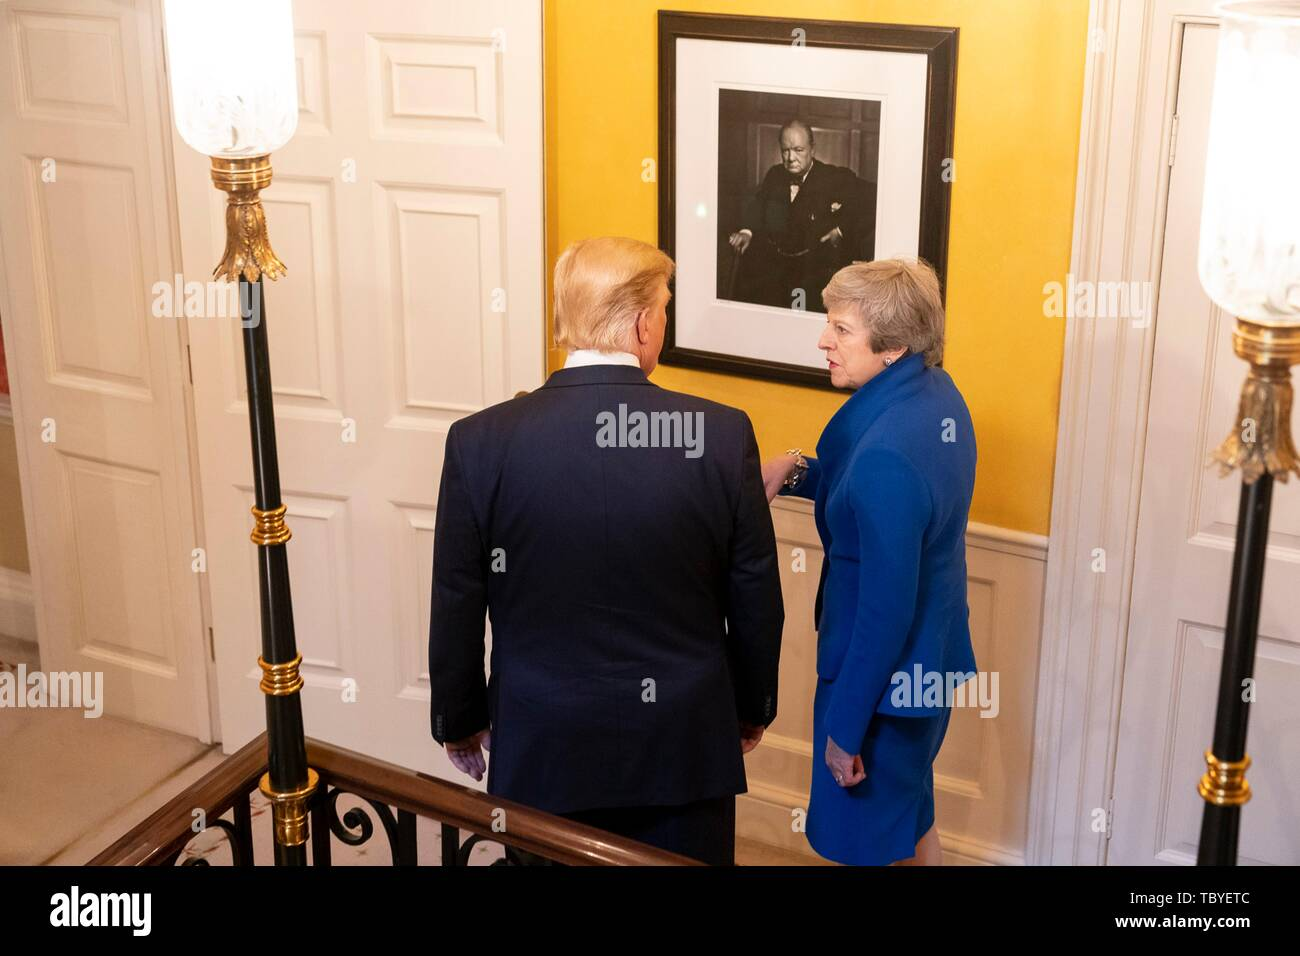 London, UK. 04th June, 2019. U.S President Donald Trump and outgoing British Prime Minister Theresa May walk past a portrait of former British Prime Minister Winston Churchill at No. 10 Downing Street June 4, 2019 in London, England. Credit: Planetpix/Alamy Live News - Stock Image